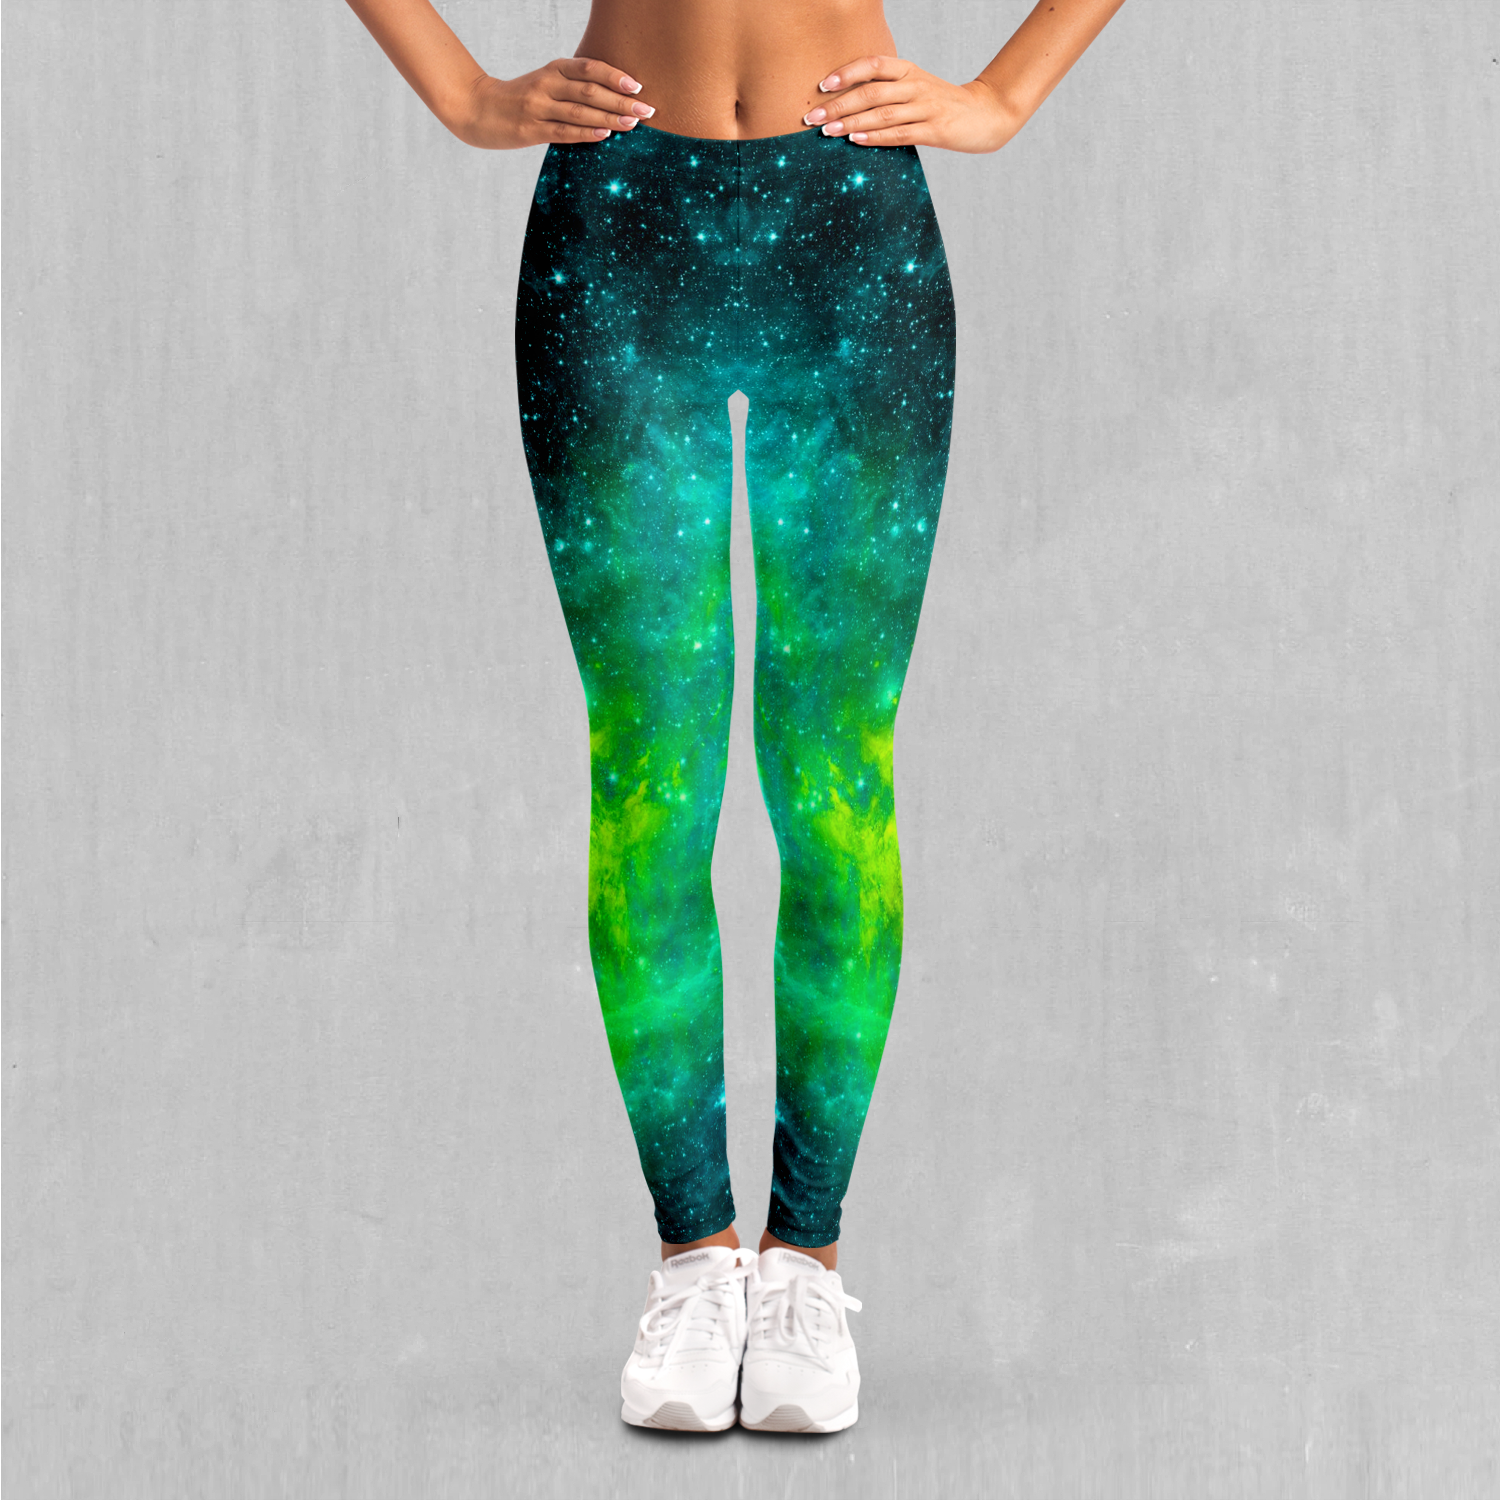 Acidic Realm Leggings - EDM Rave Festival Street Wear Abstract Apparel